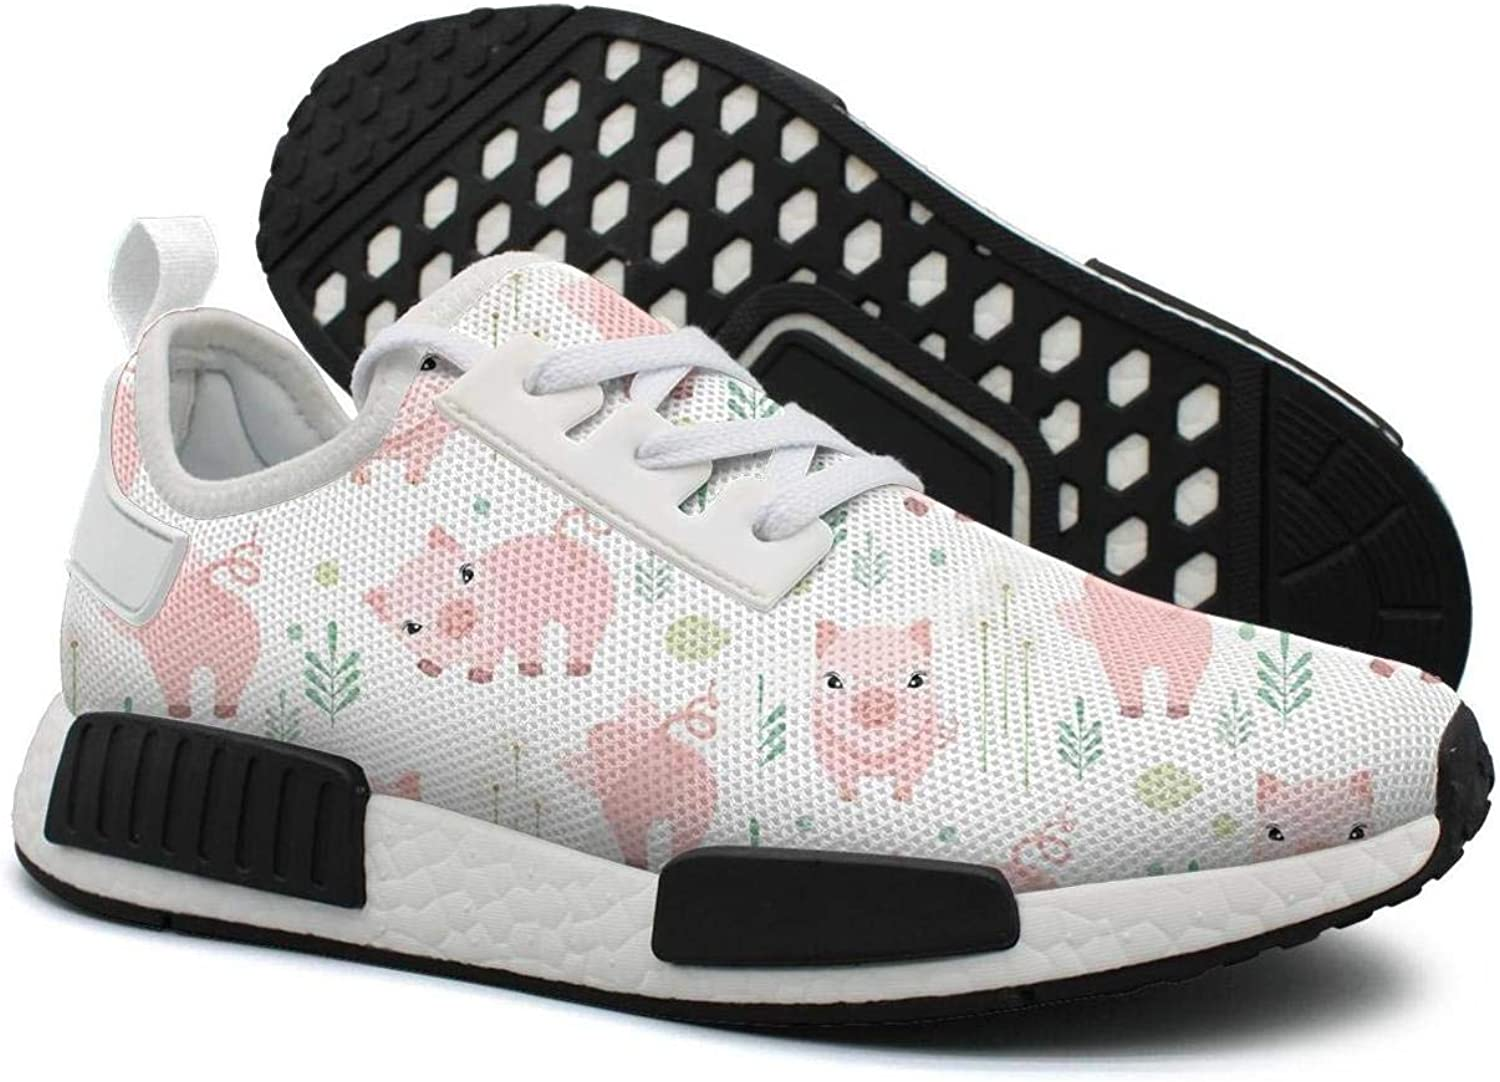 Cute Pink Pig Mom with Piggy Kid Women's Unique Lightweight Sneakers Gym Outdoor Gym shoes